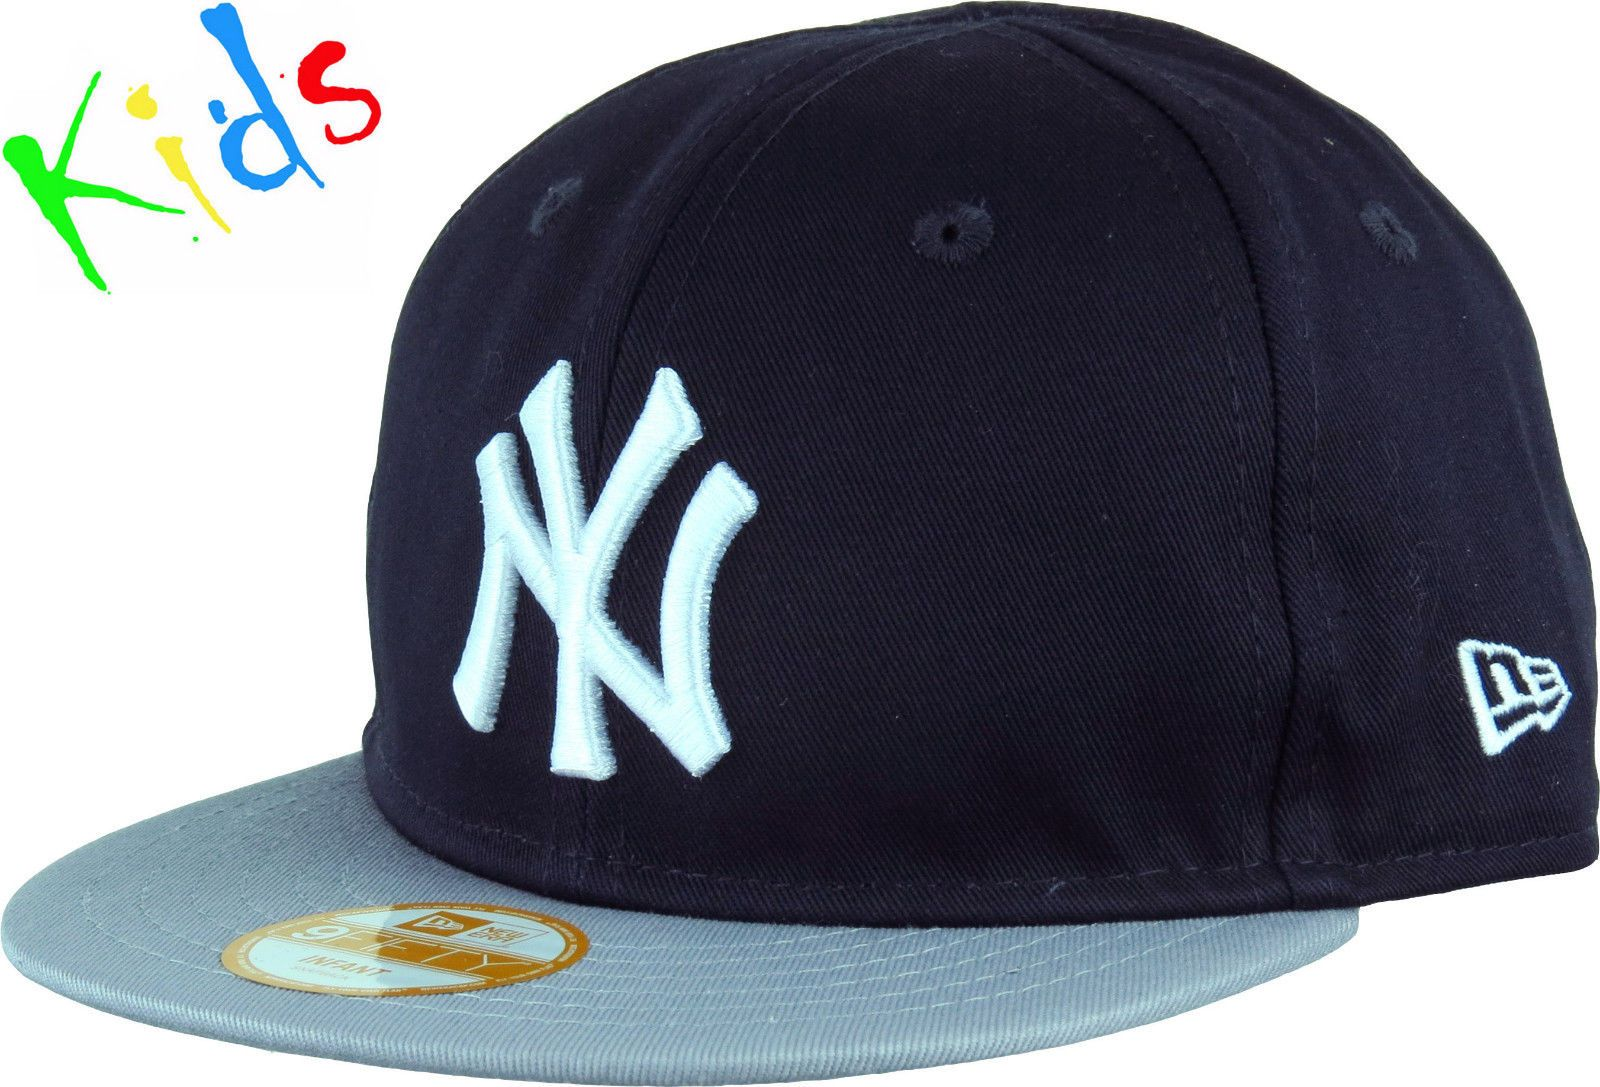 9463f77c656 Ny Yankees Era 950 Infants My 1St Snapback Cap (0 - 2 Years ...